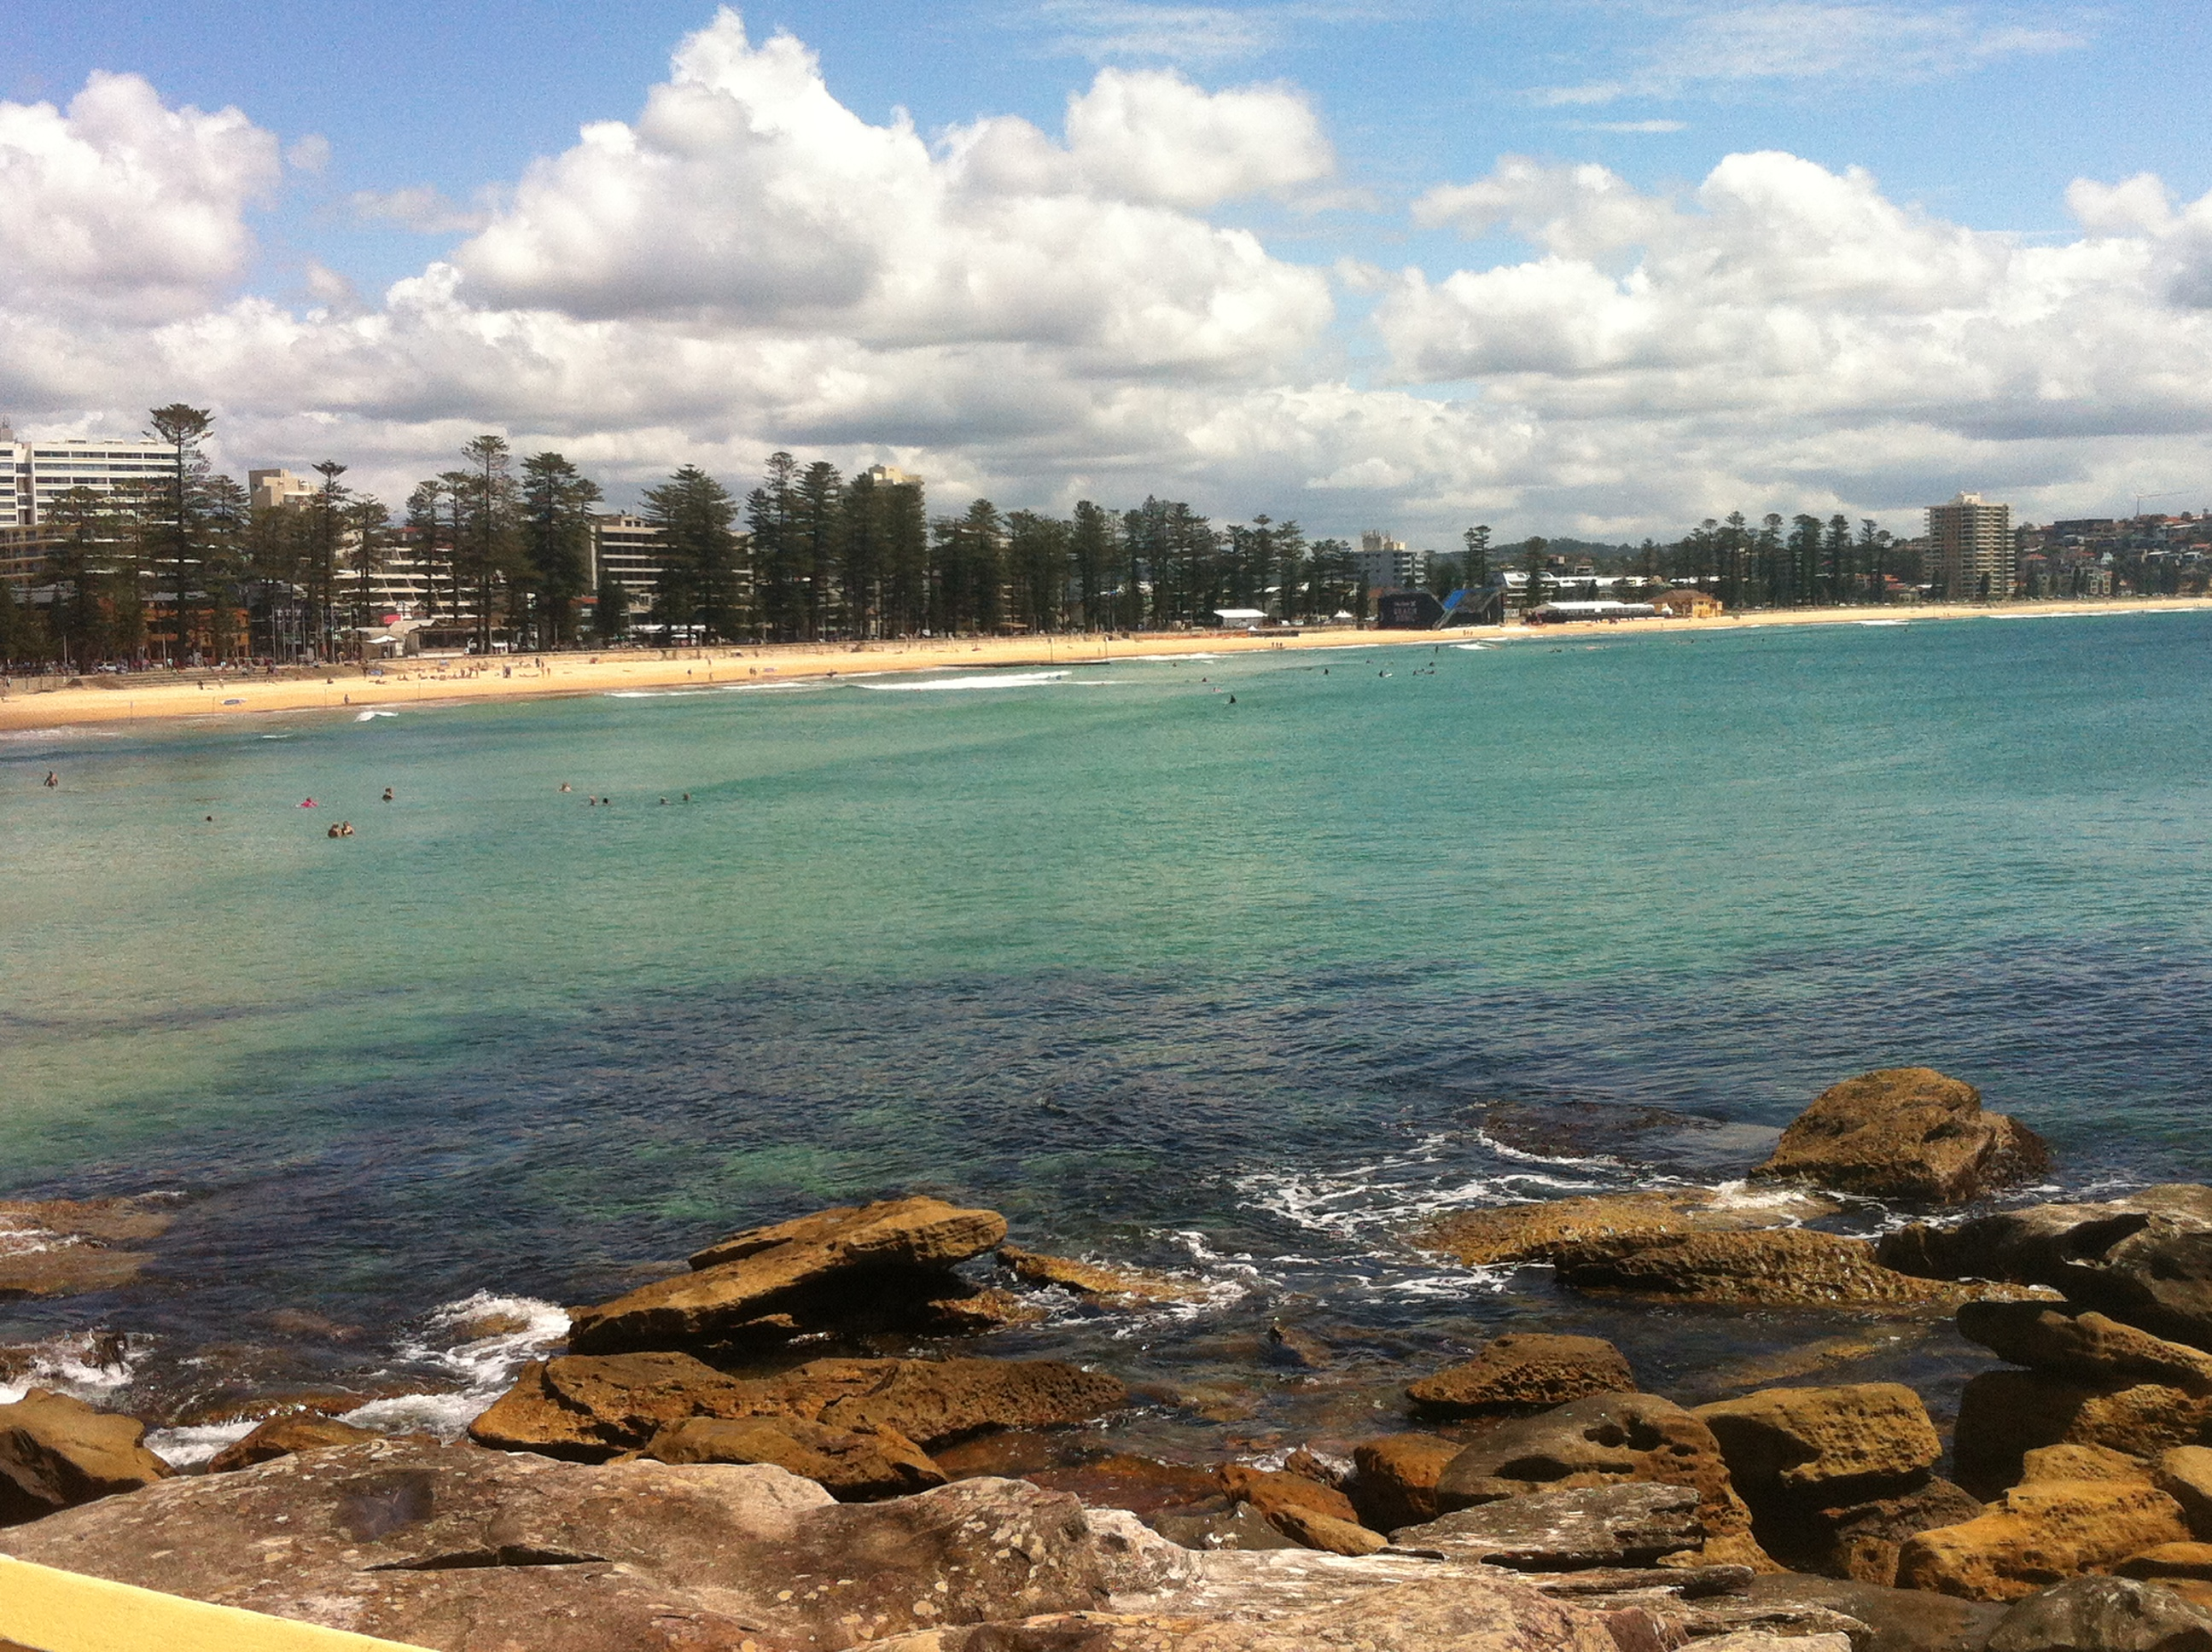 A trip to Manly Beach and what it cost